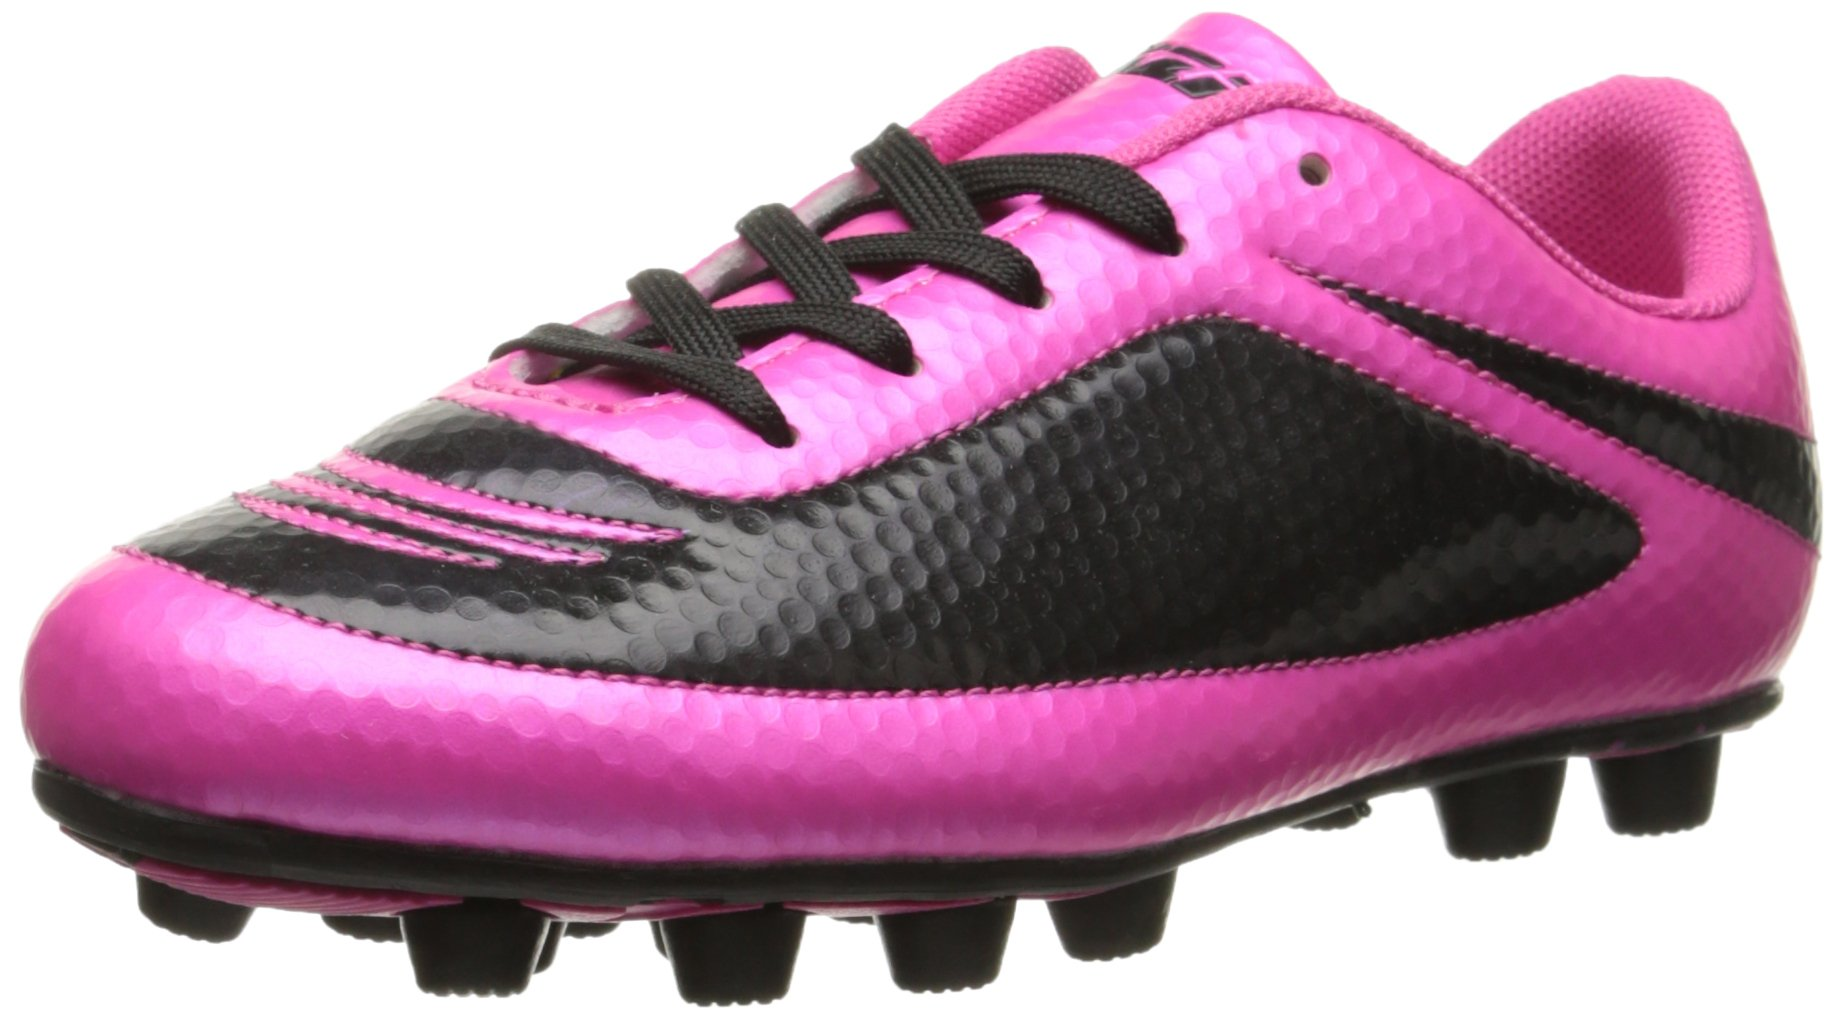 Vizari Infinity FG 93344-11.5 Soccer Cleat (Toddler) Pink/Black, 11.5 M US